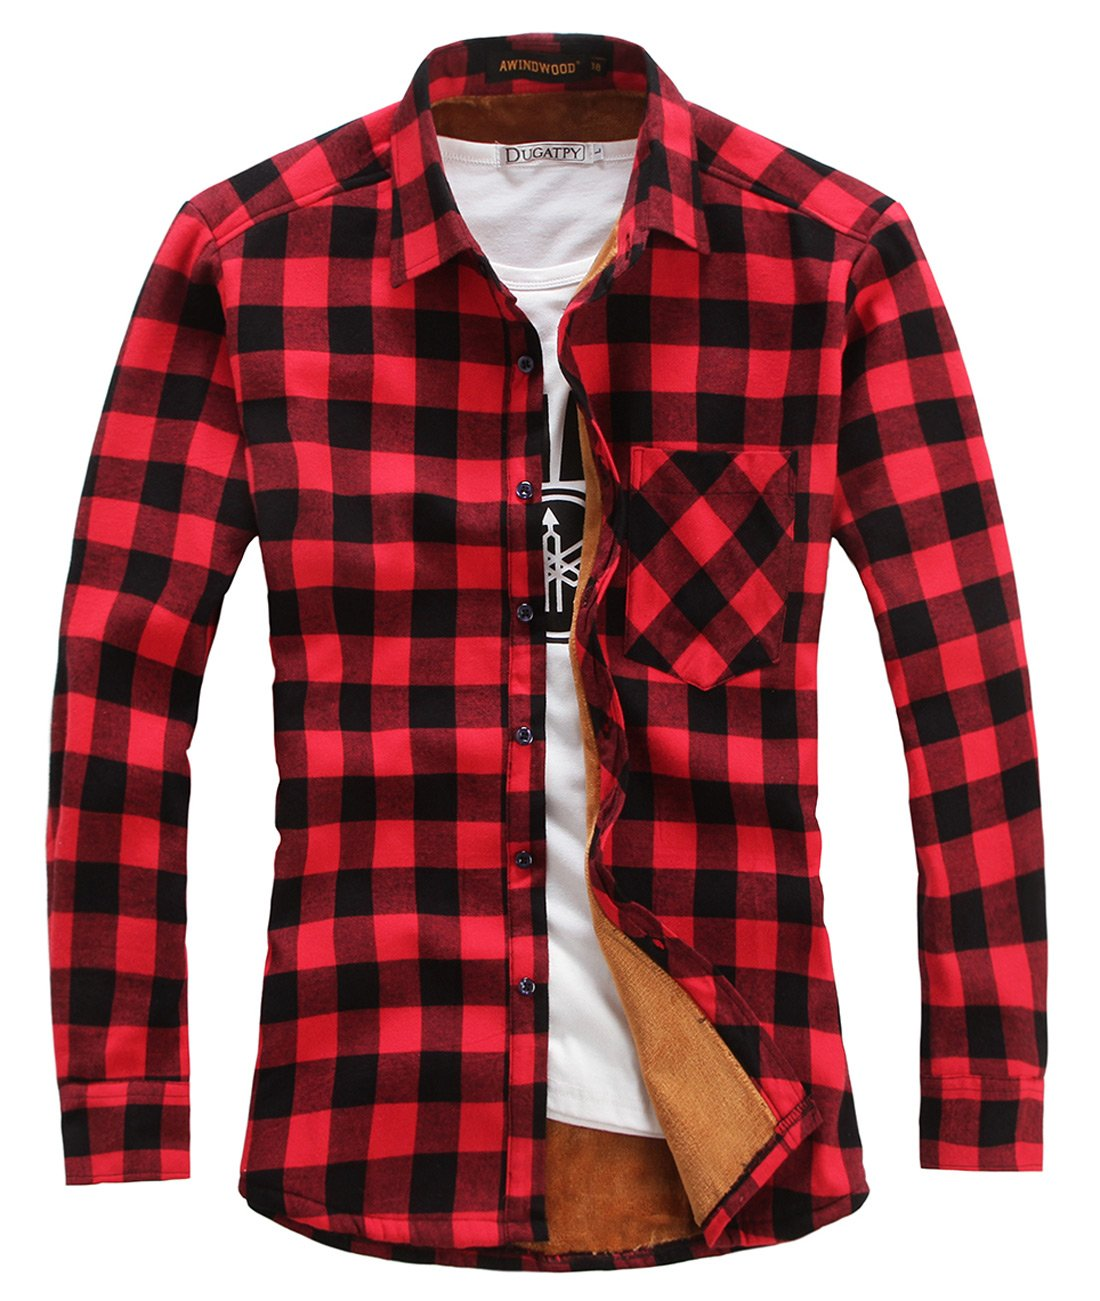 chouyatou Men's Casual Long Sleeve Fleece Lined Plaid Flannel Buttoned Overshirts Jacket (Medium, M04) by chouyatou